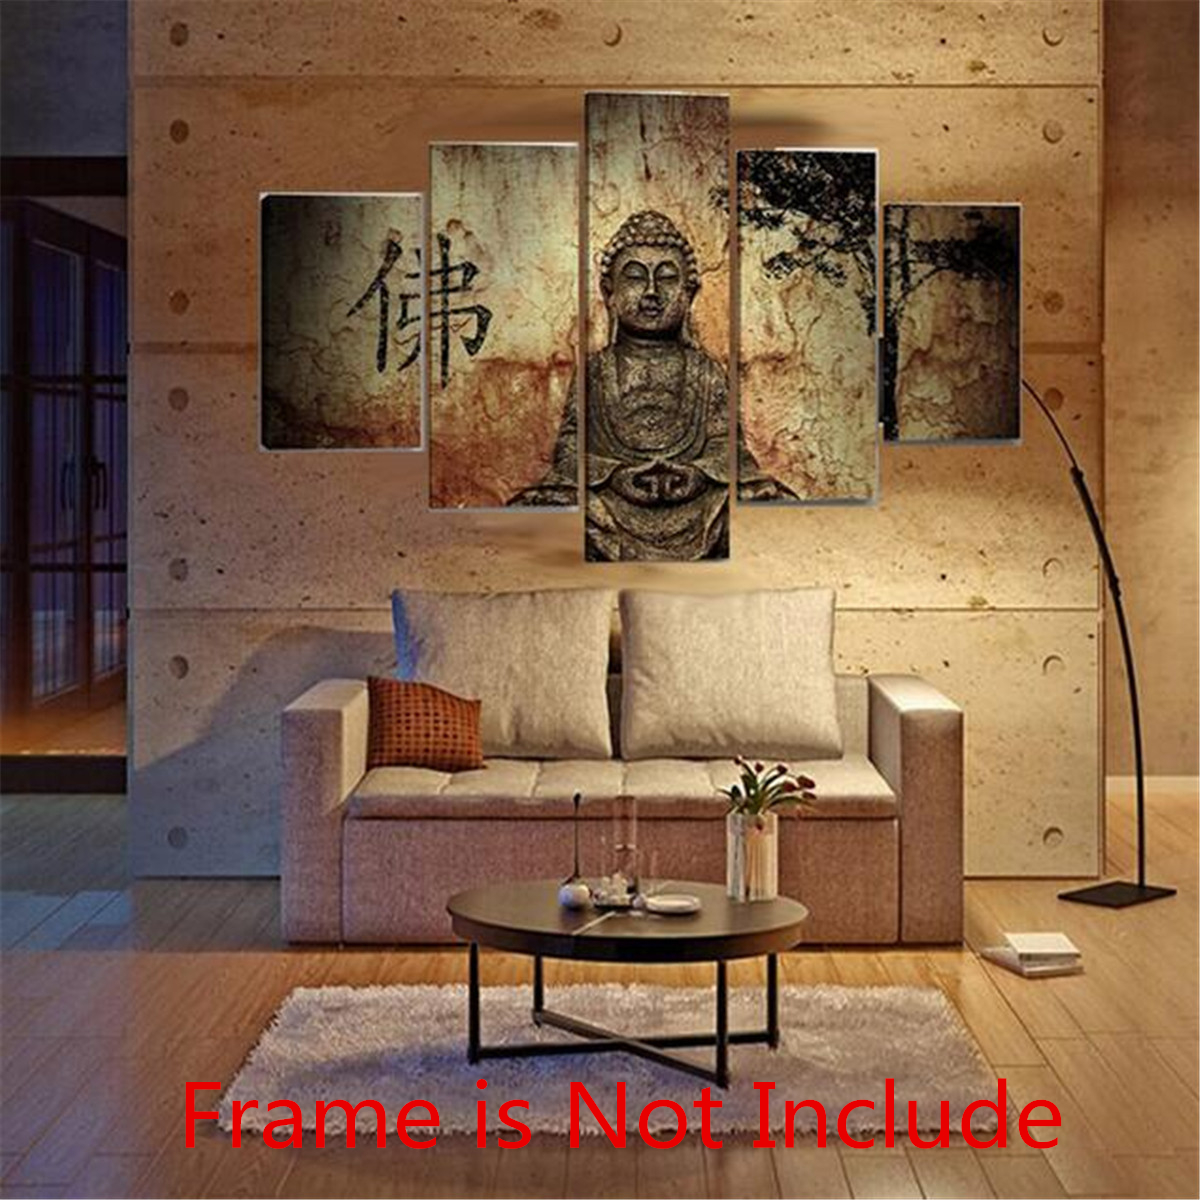 Huge Buddha Abstract Canvas Art Oil Painting Modern Home Wall Decor Set No Frame by